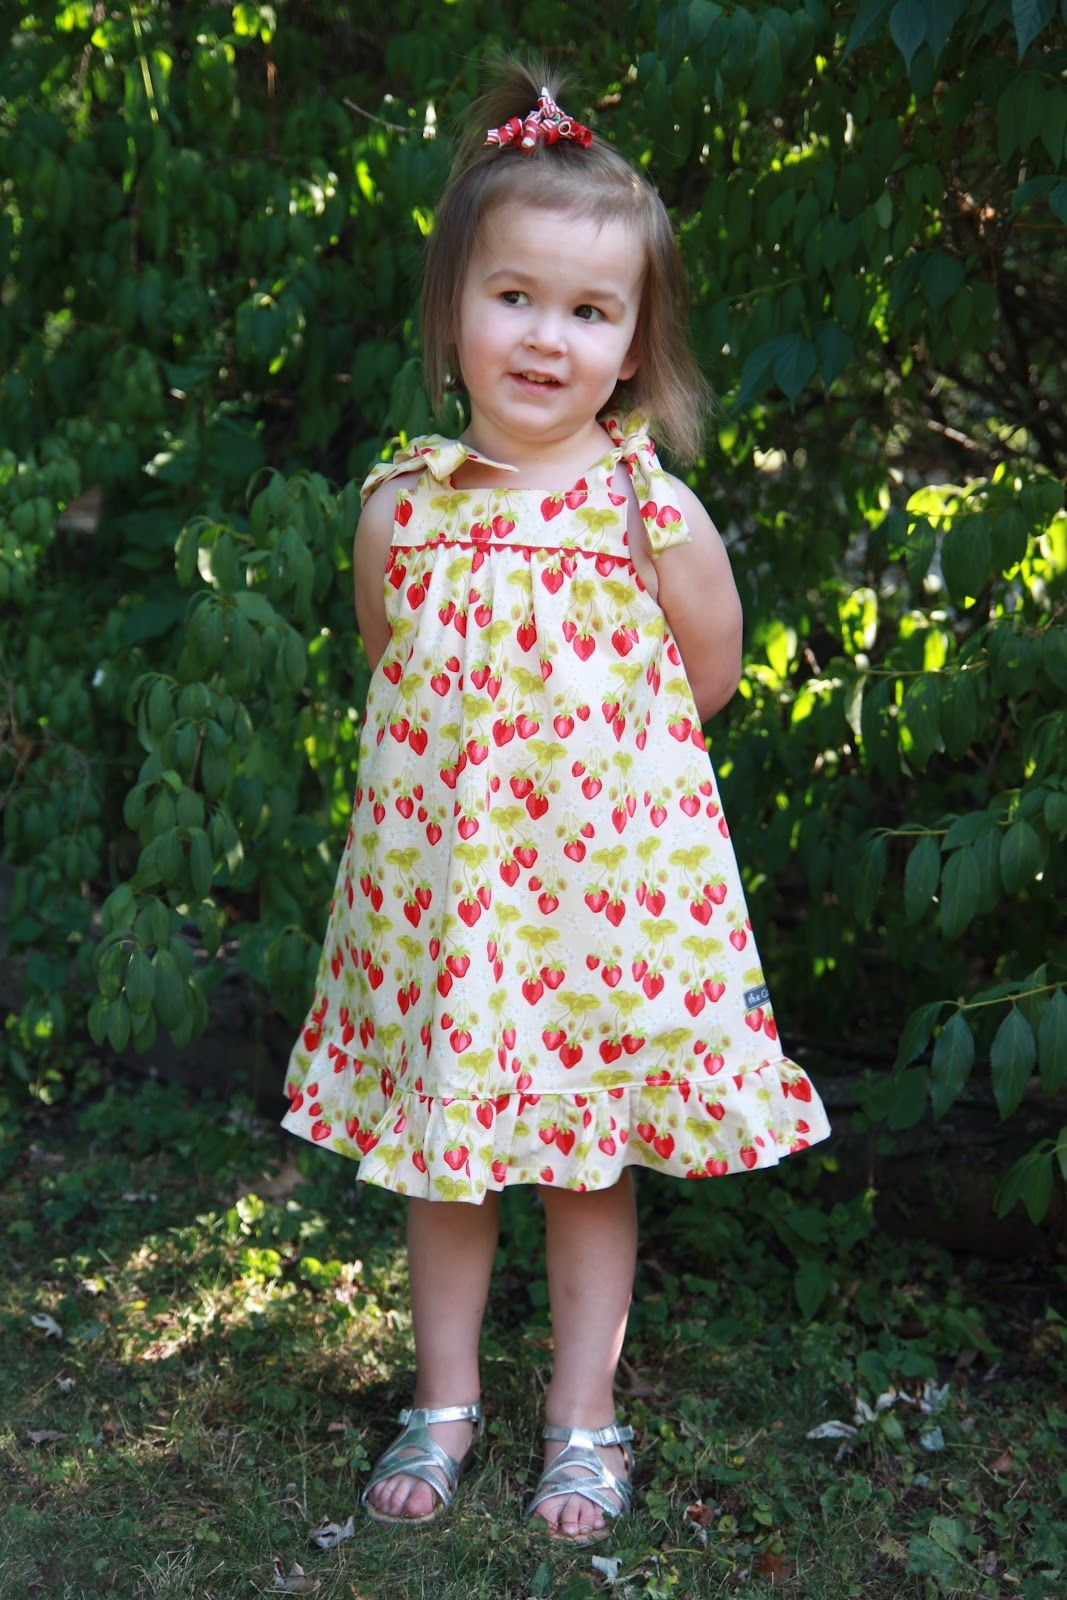 Summer Picnic Dress Free Pdf Pattern And Tutorial The Cottage Mama Picnic Dress Sewing Kids Clothes Kids Clothes Diy [ 1600 x 1067 Pixel ]